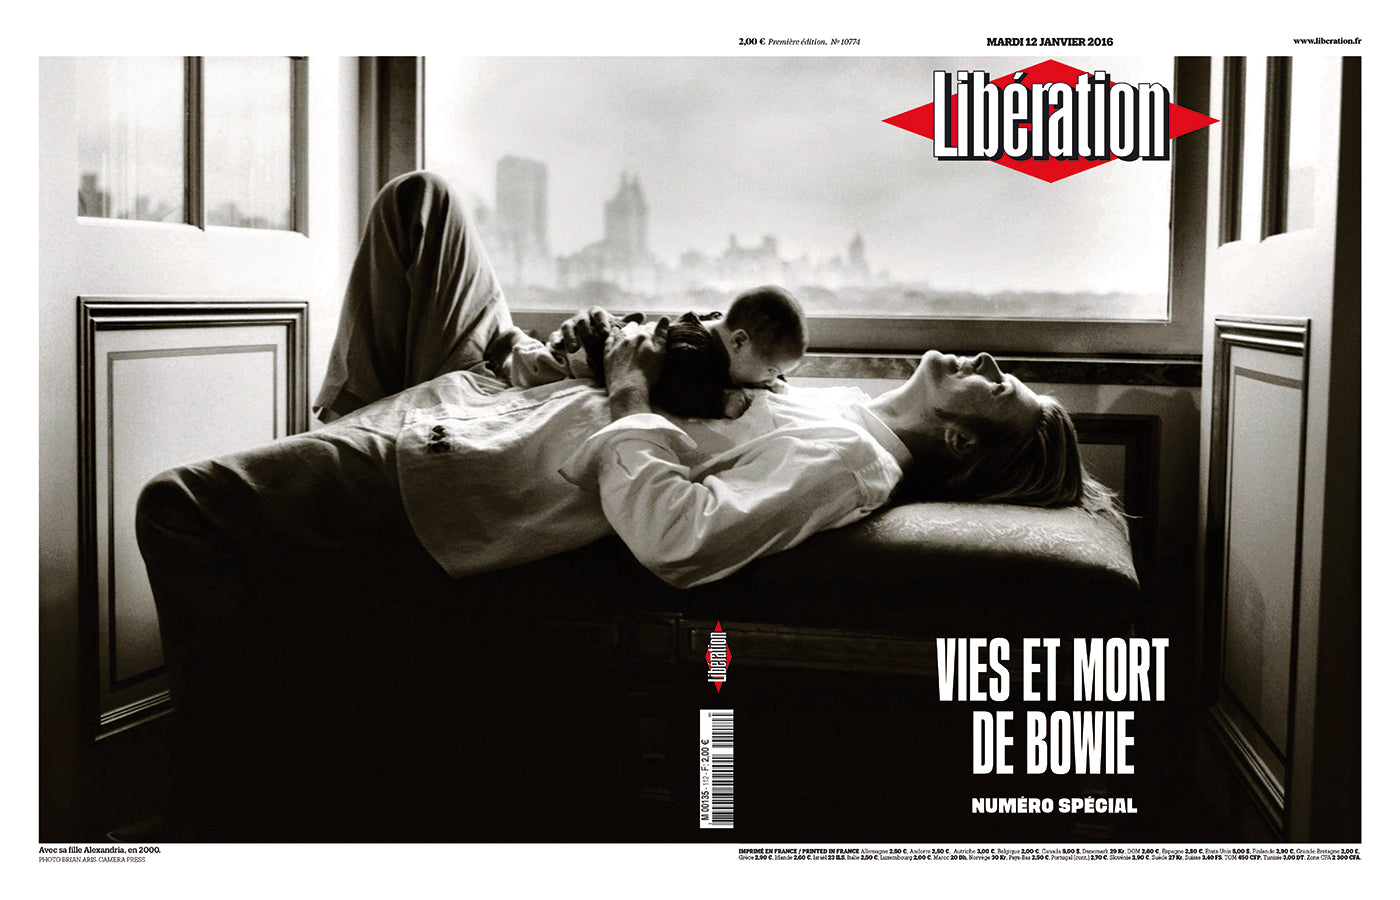 David Bowie on the cover of French newspaper Libération on the occasion of the artist's death in 2016. His infant daughter lying on his stomach. (Photo: Libération)